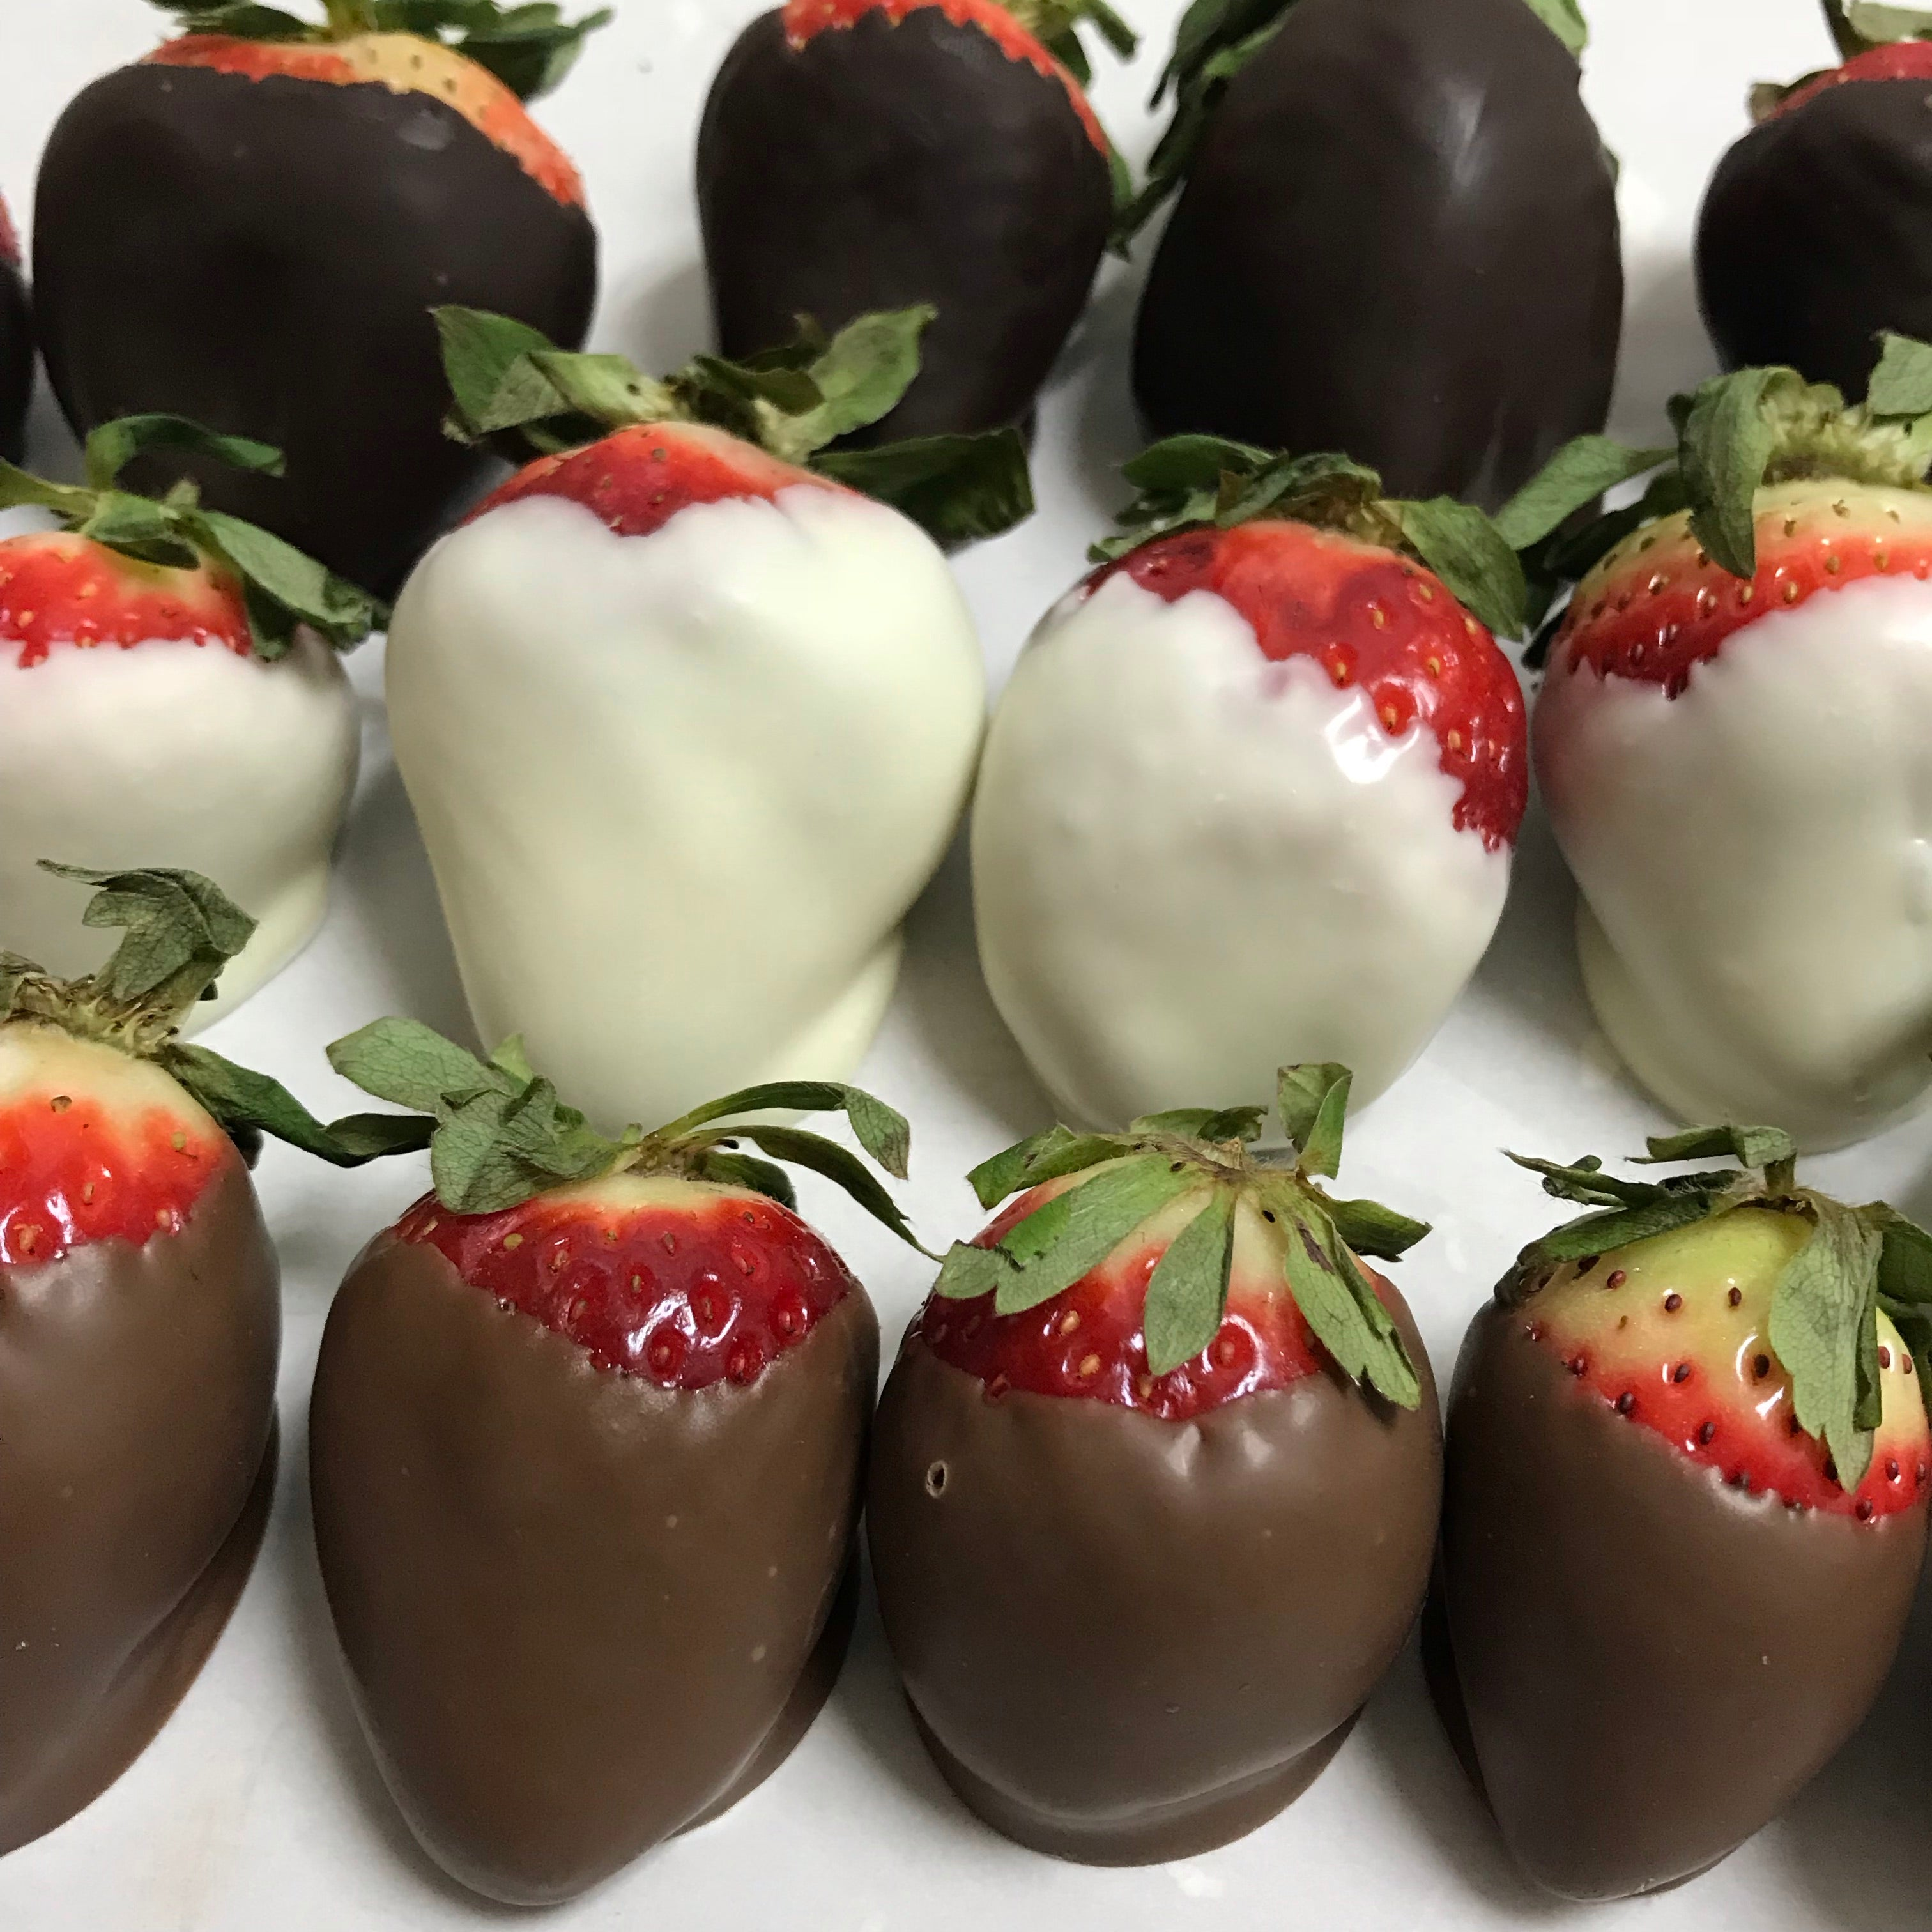 Chocolate Covered Strawberries - In Store Pickup Only